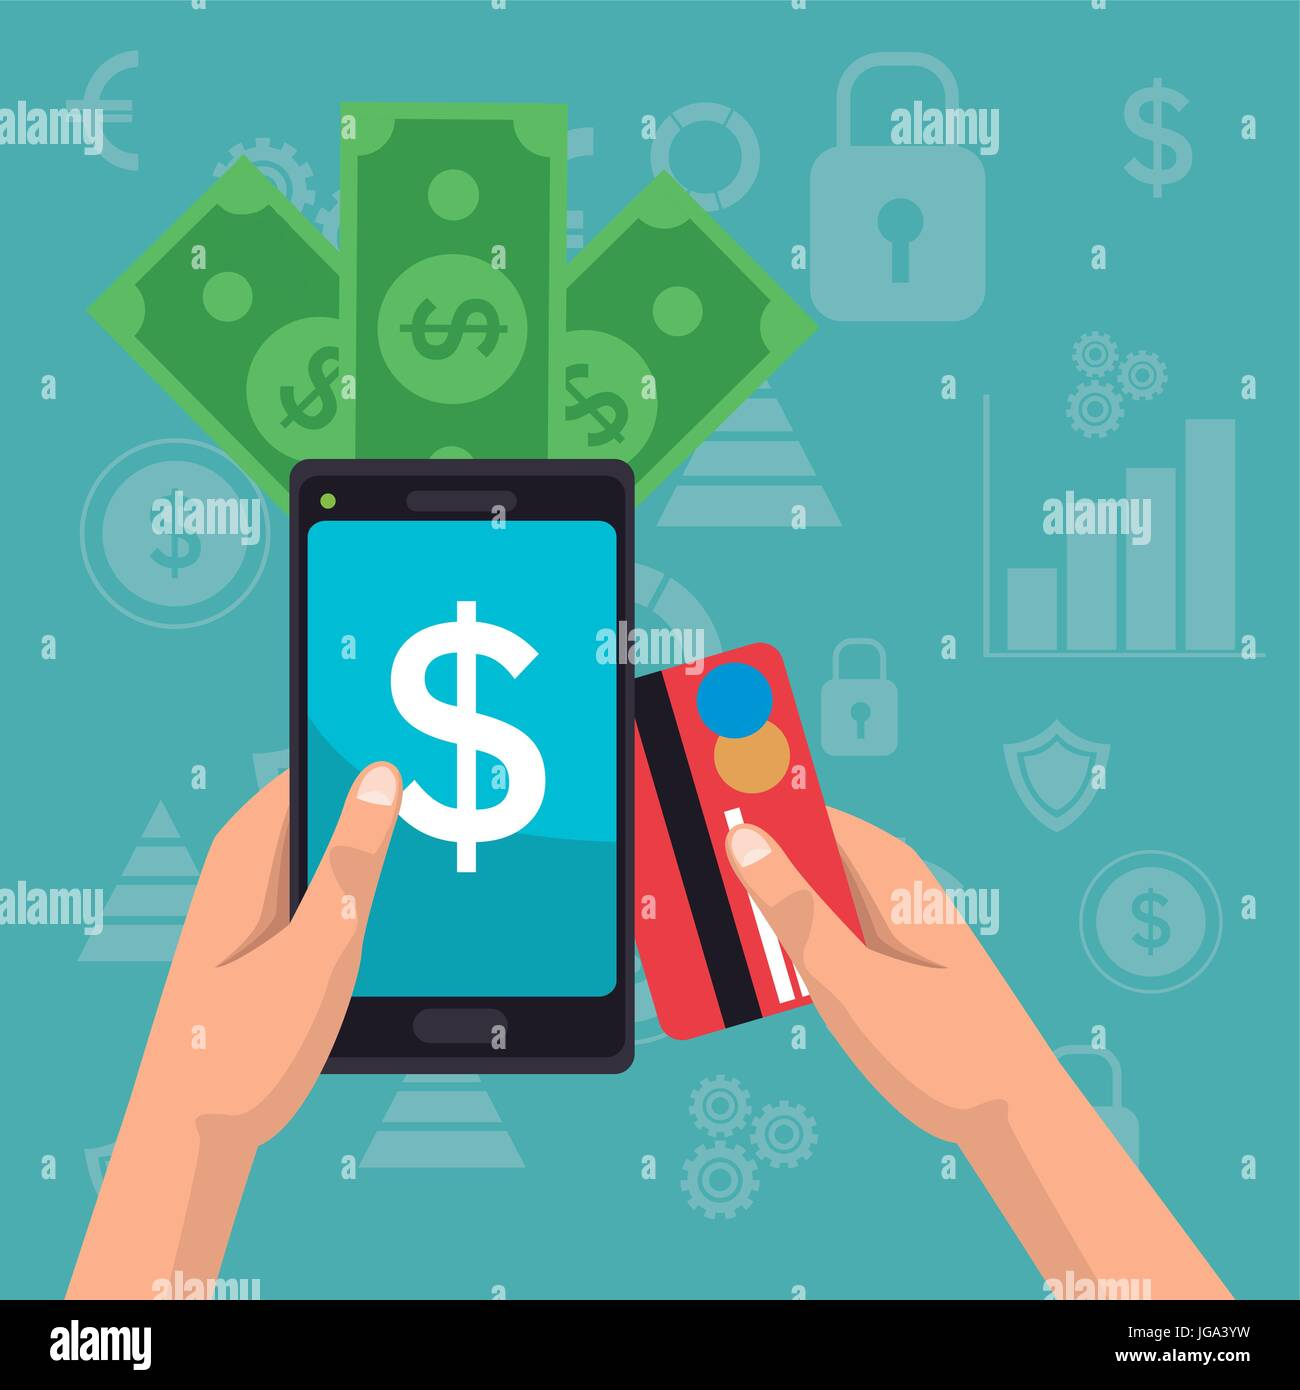 color background analytics investment icons and hand holding a smartphone with bills and debt card - Stock Image